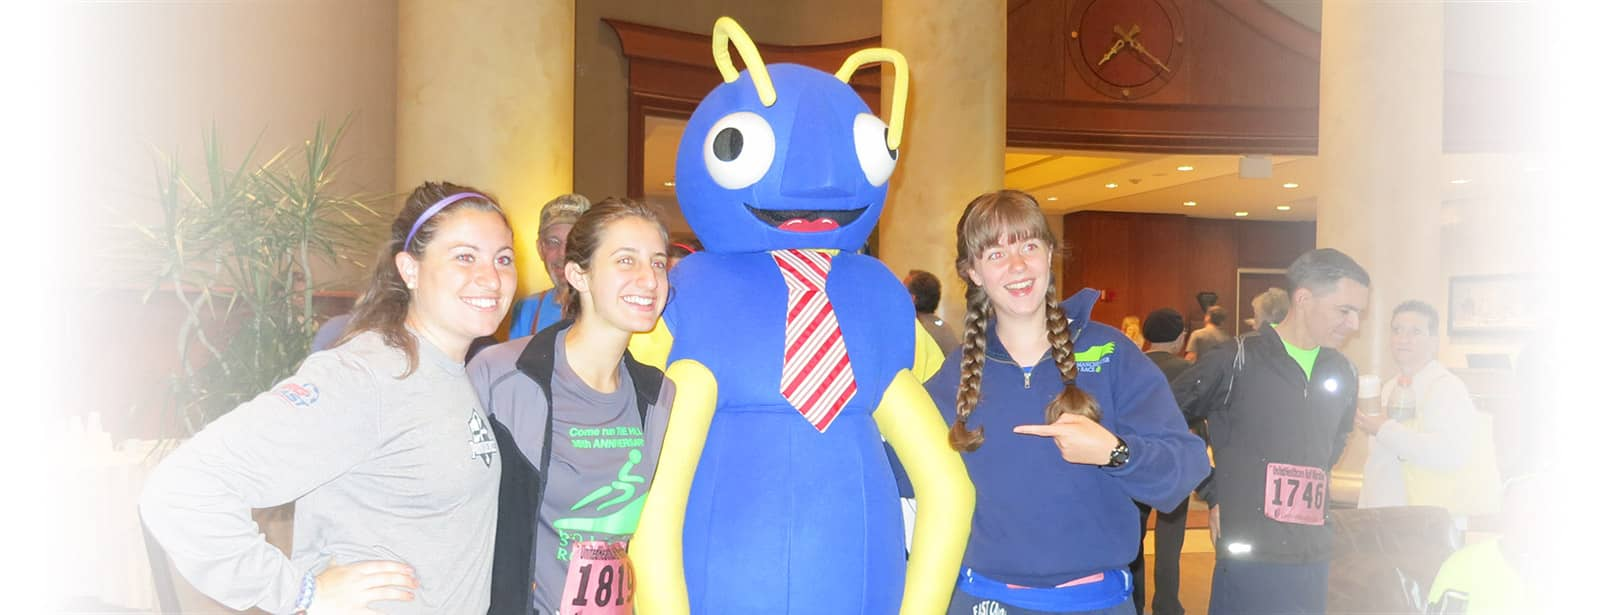 the big blue bug mascot in providence rhode island